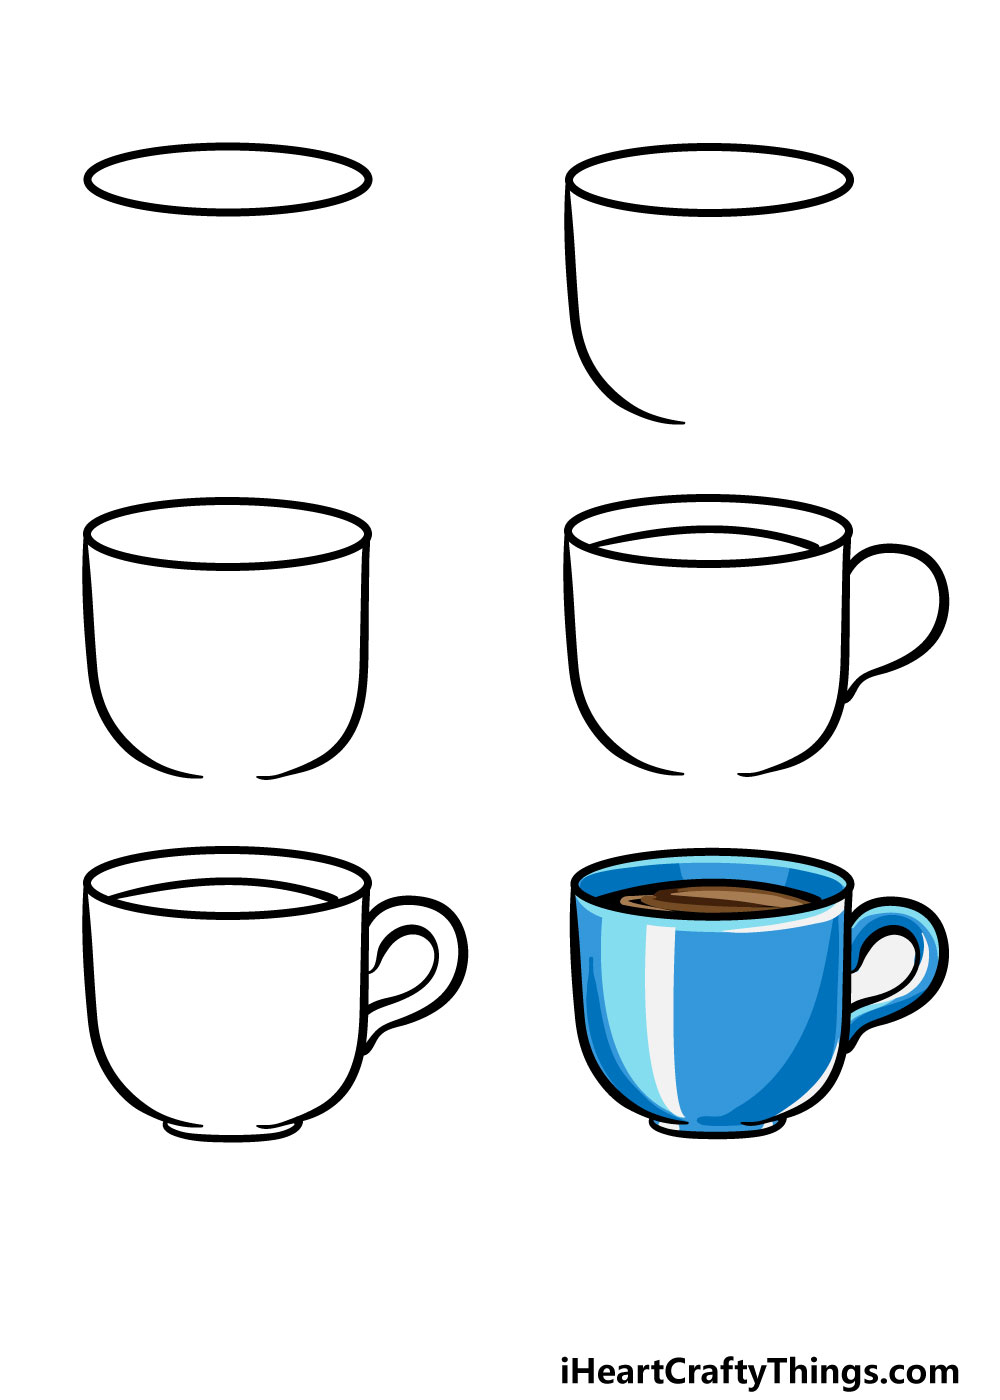 how to draw a cup in 6 steps